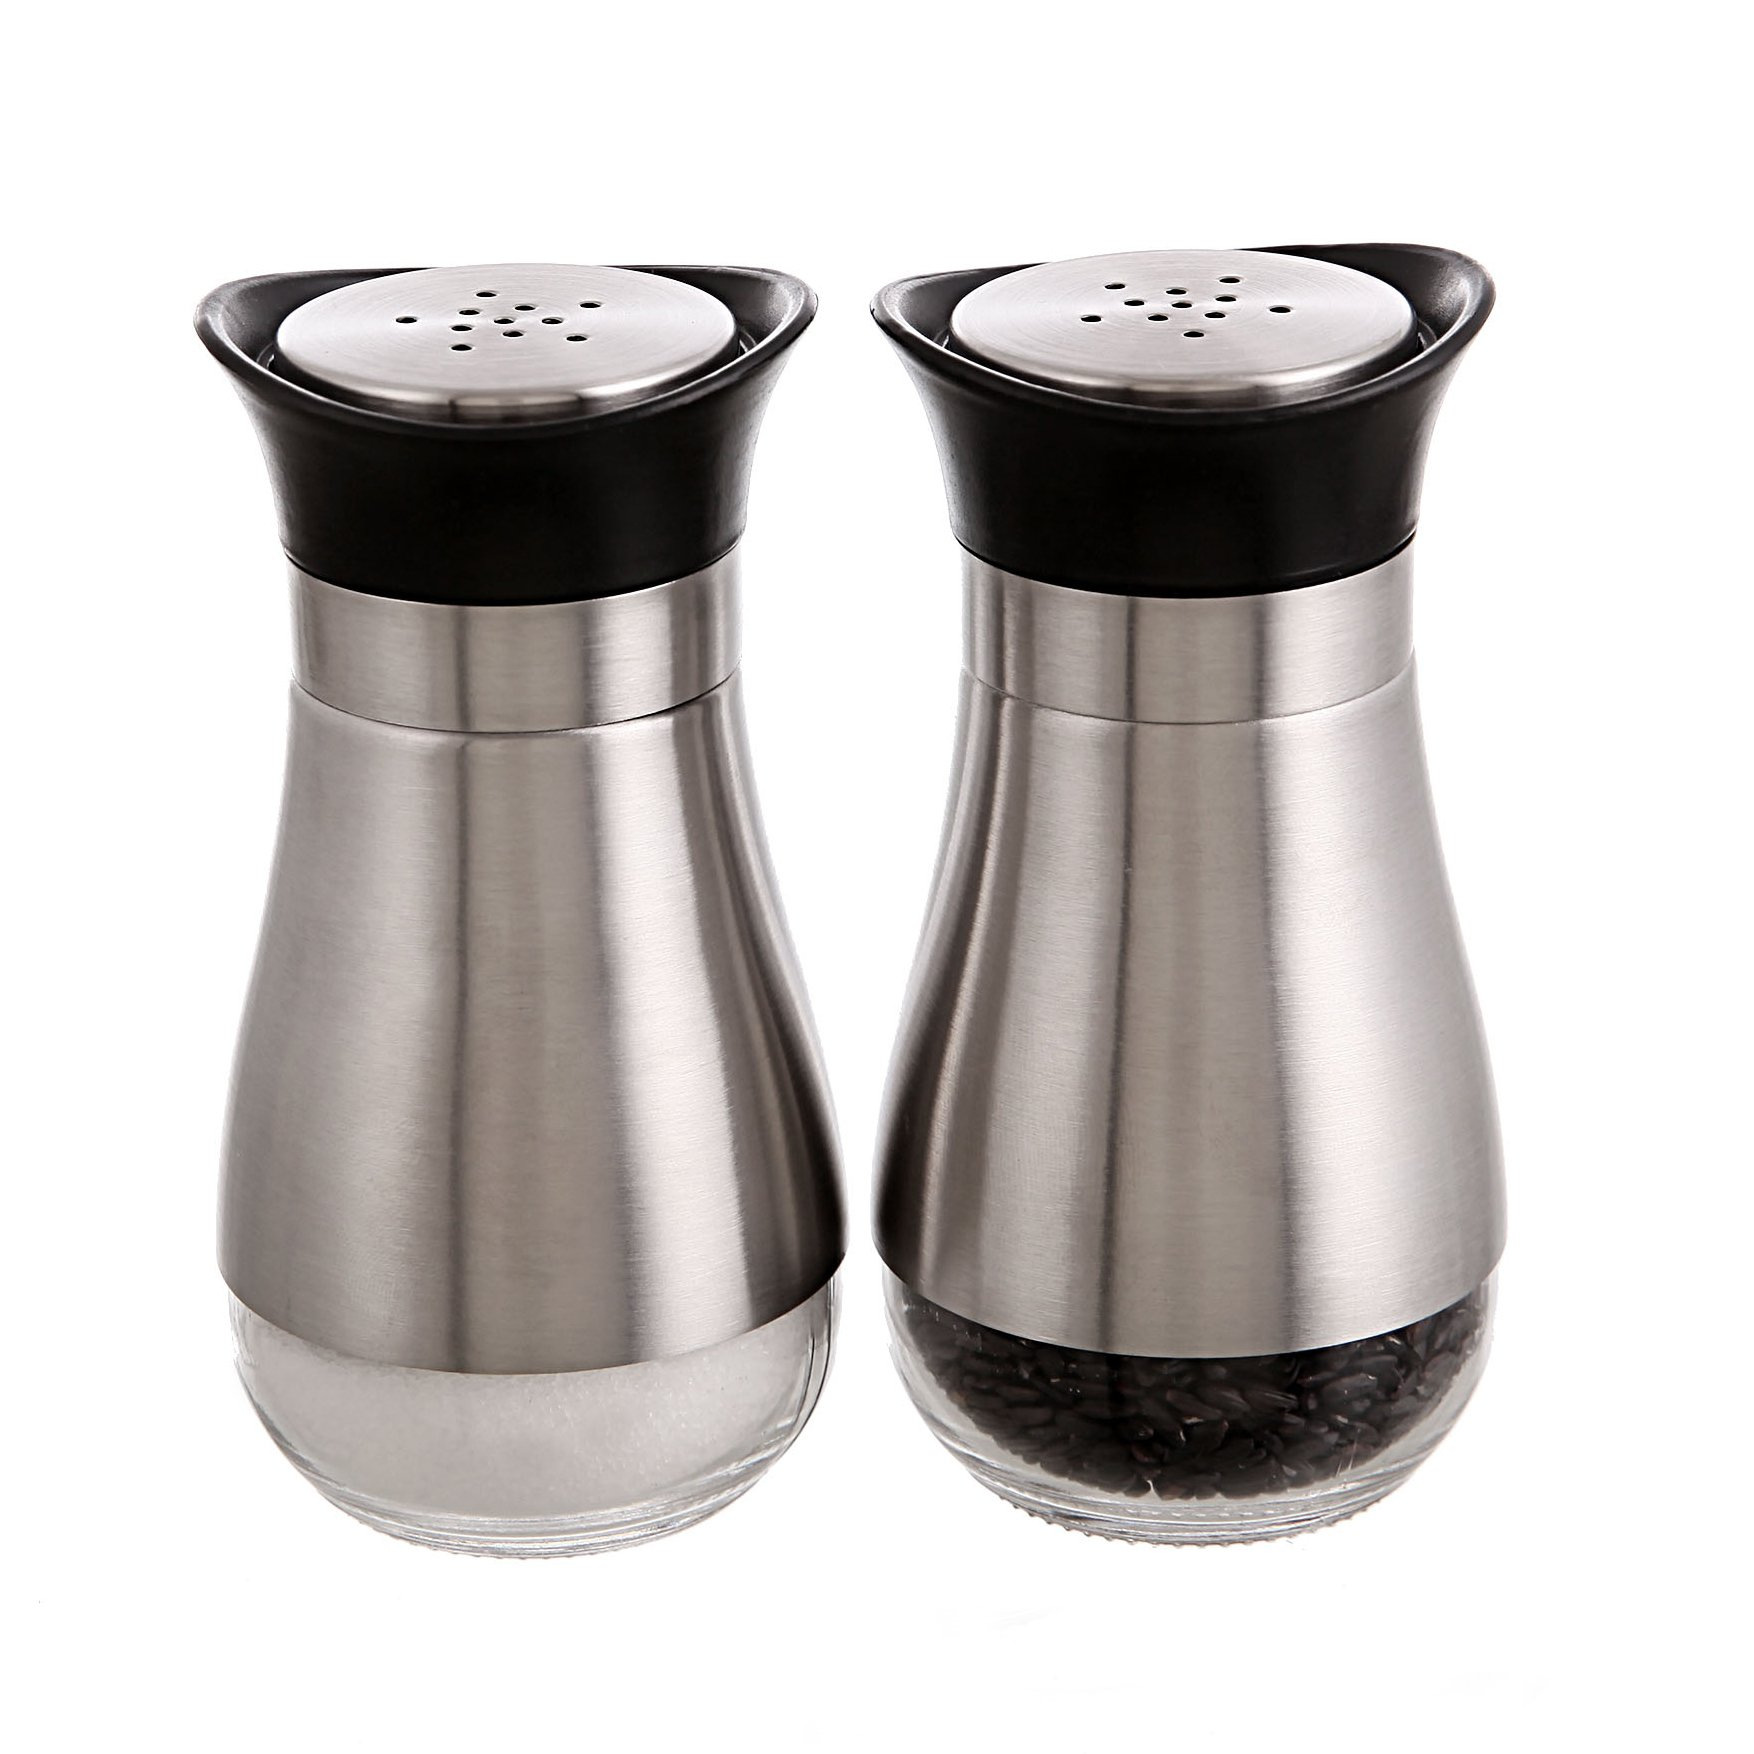 SILUKER Salt and Pepper Shakers Set - Elegant Stainless Steel with Glass Bottom - Salt Shaker - Silver(Set of 2)